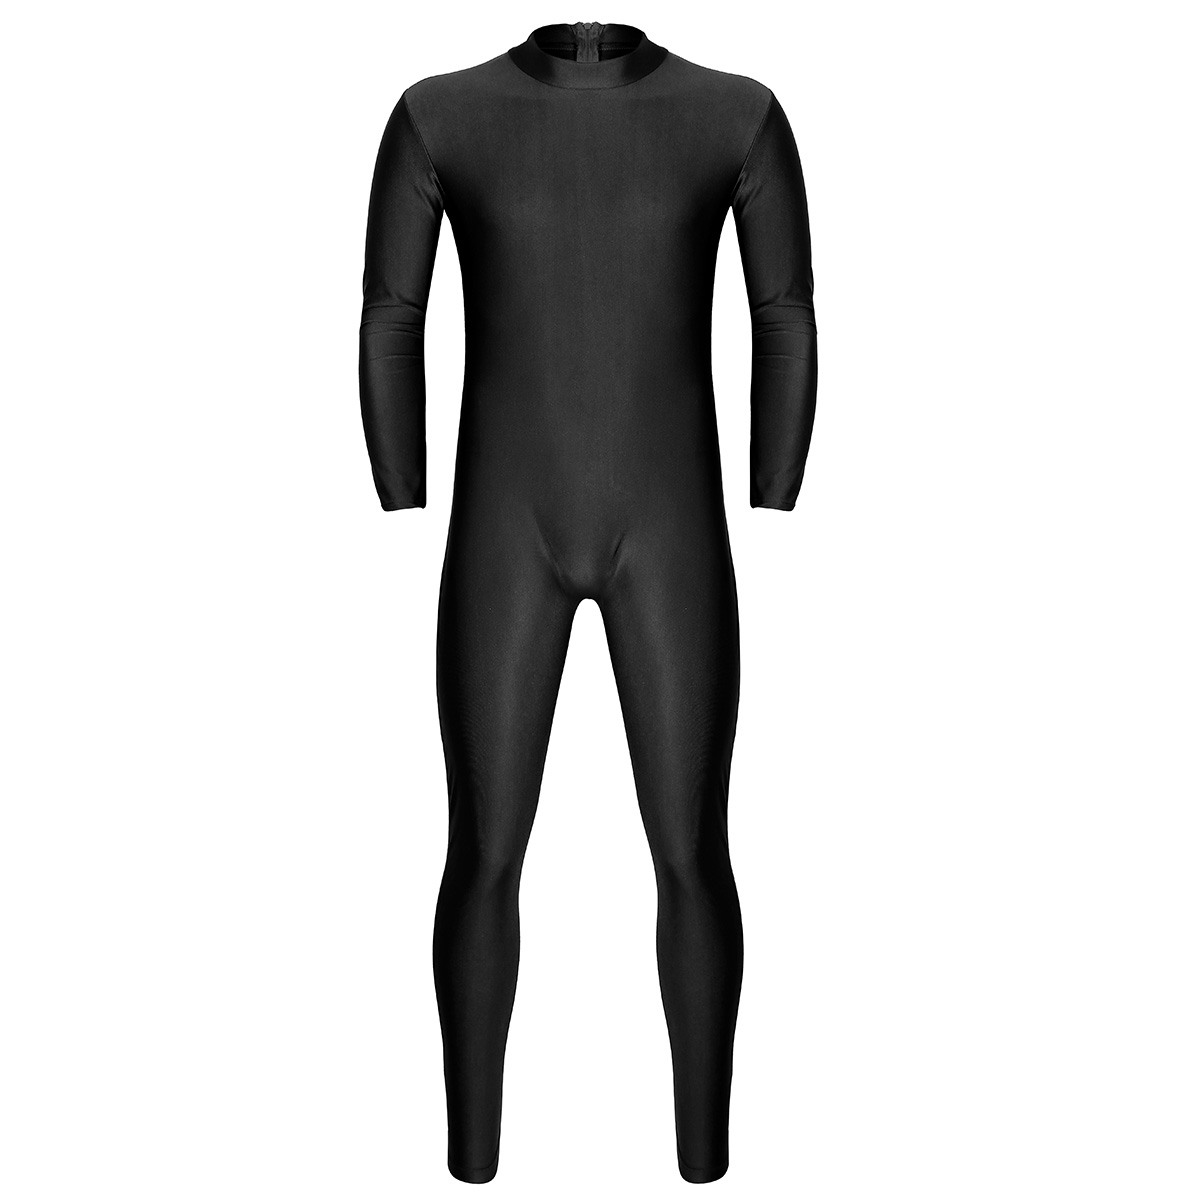 Mens Well Fit One Piece Leotards Long Sleeves Skinny Full-body Catsuit Adult Lycra Dancewear Bodysuit Gymnastics Workout Unitard 14